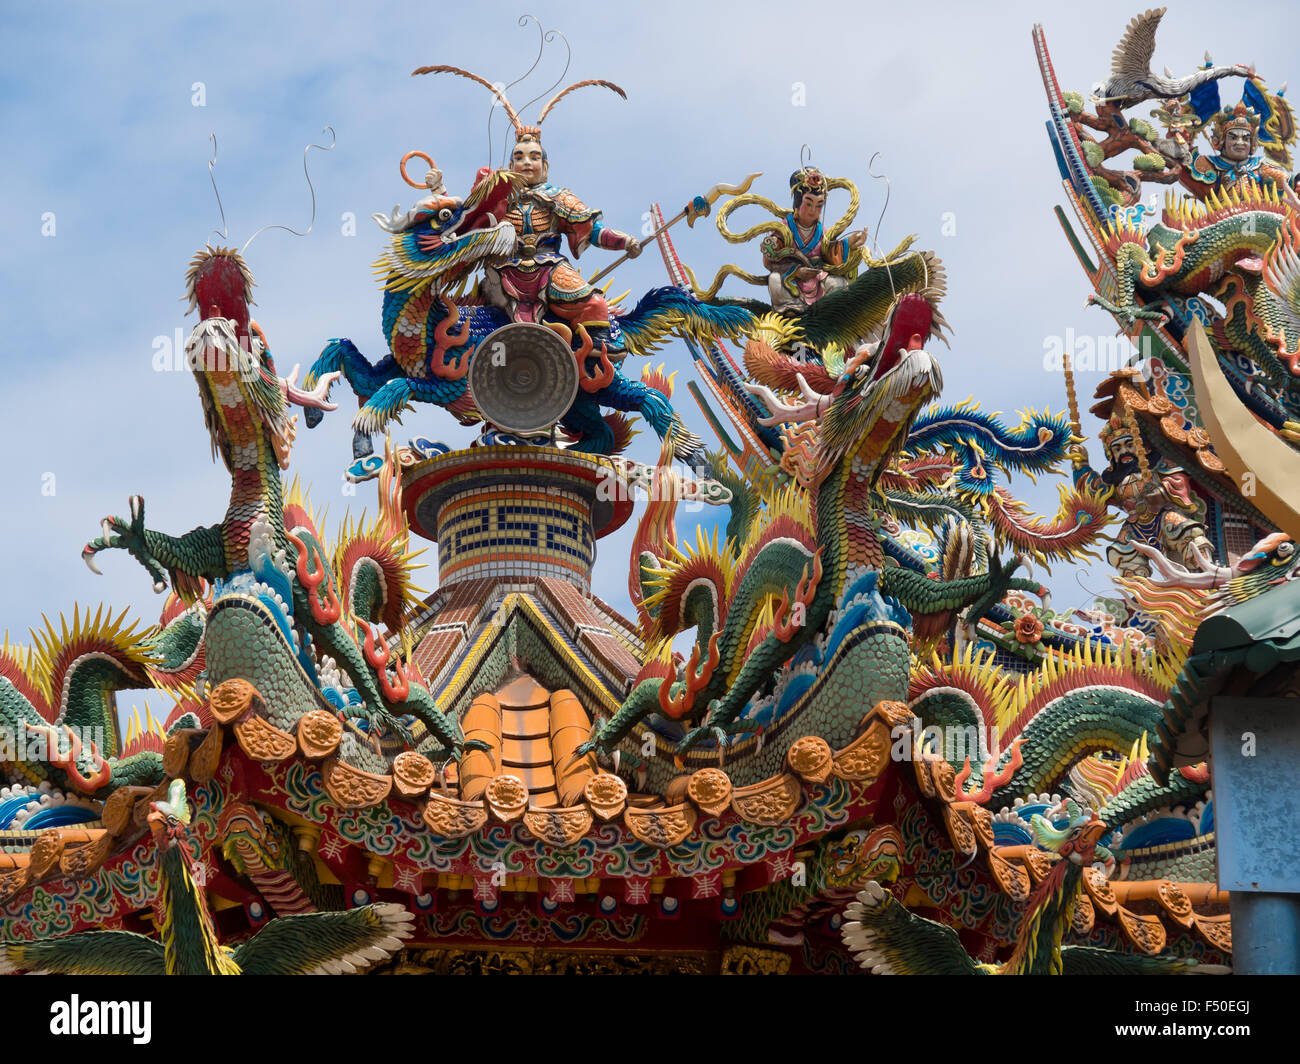 Ornate mosaic sculptures on top of a Taoist temple in Taiwan Stock Photo